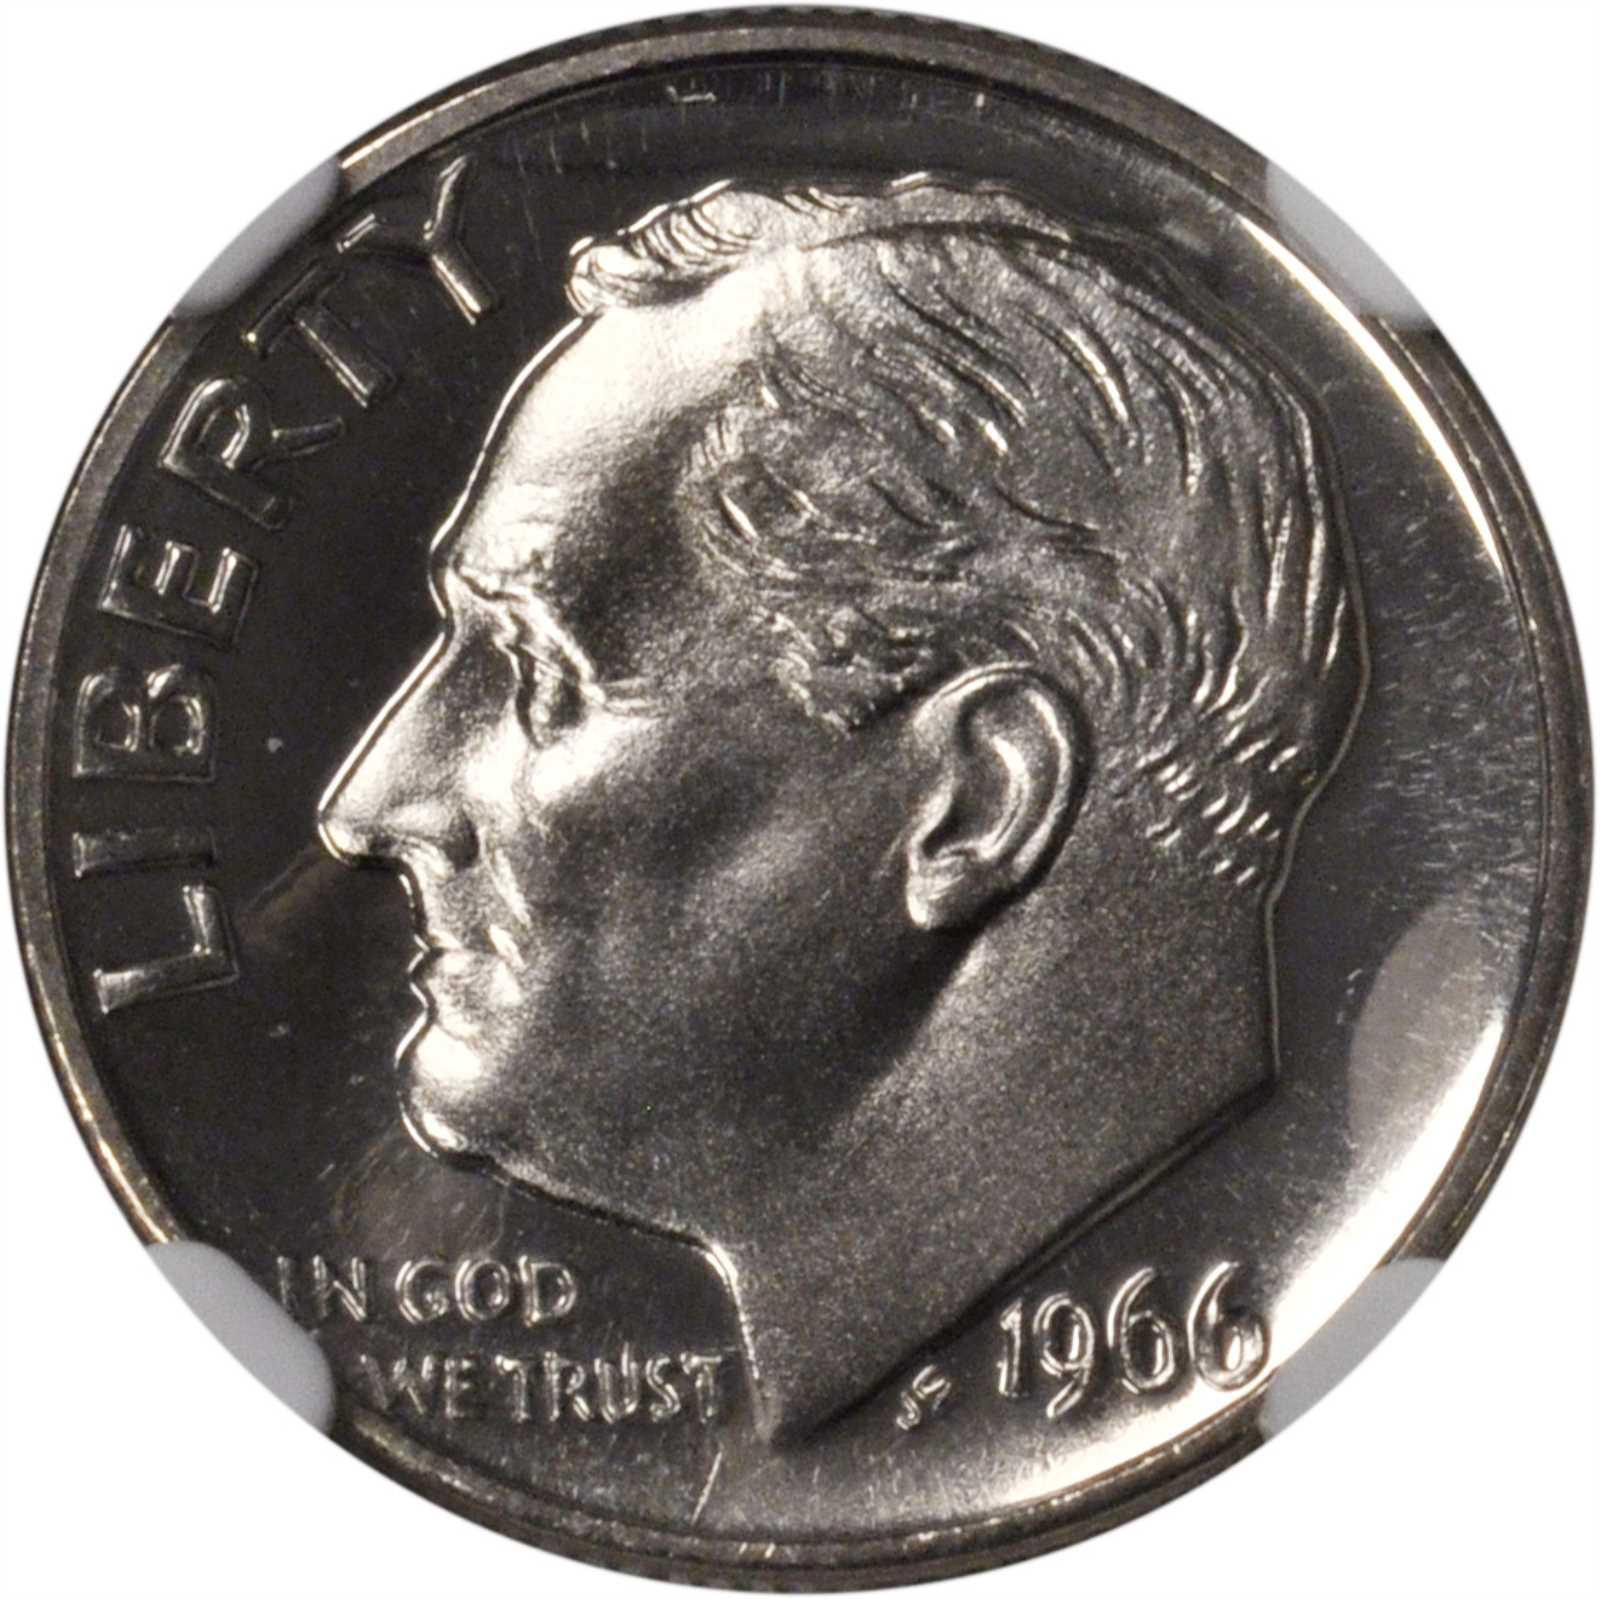 Value of 1966 Dime | Sell and Auction, Rare Coin Buyers